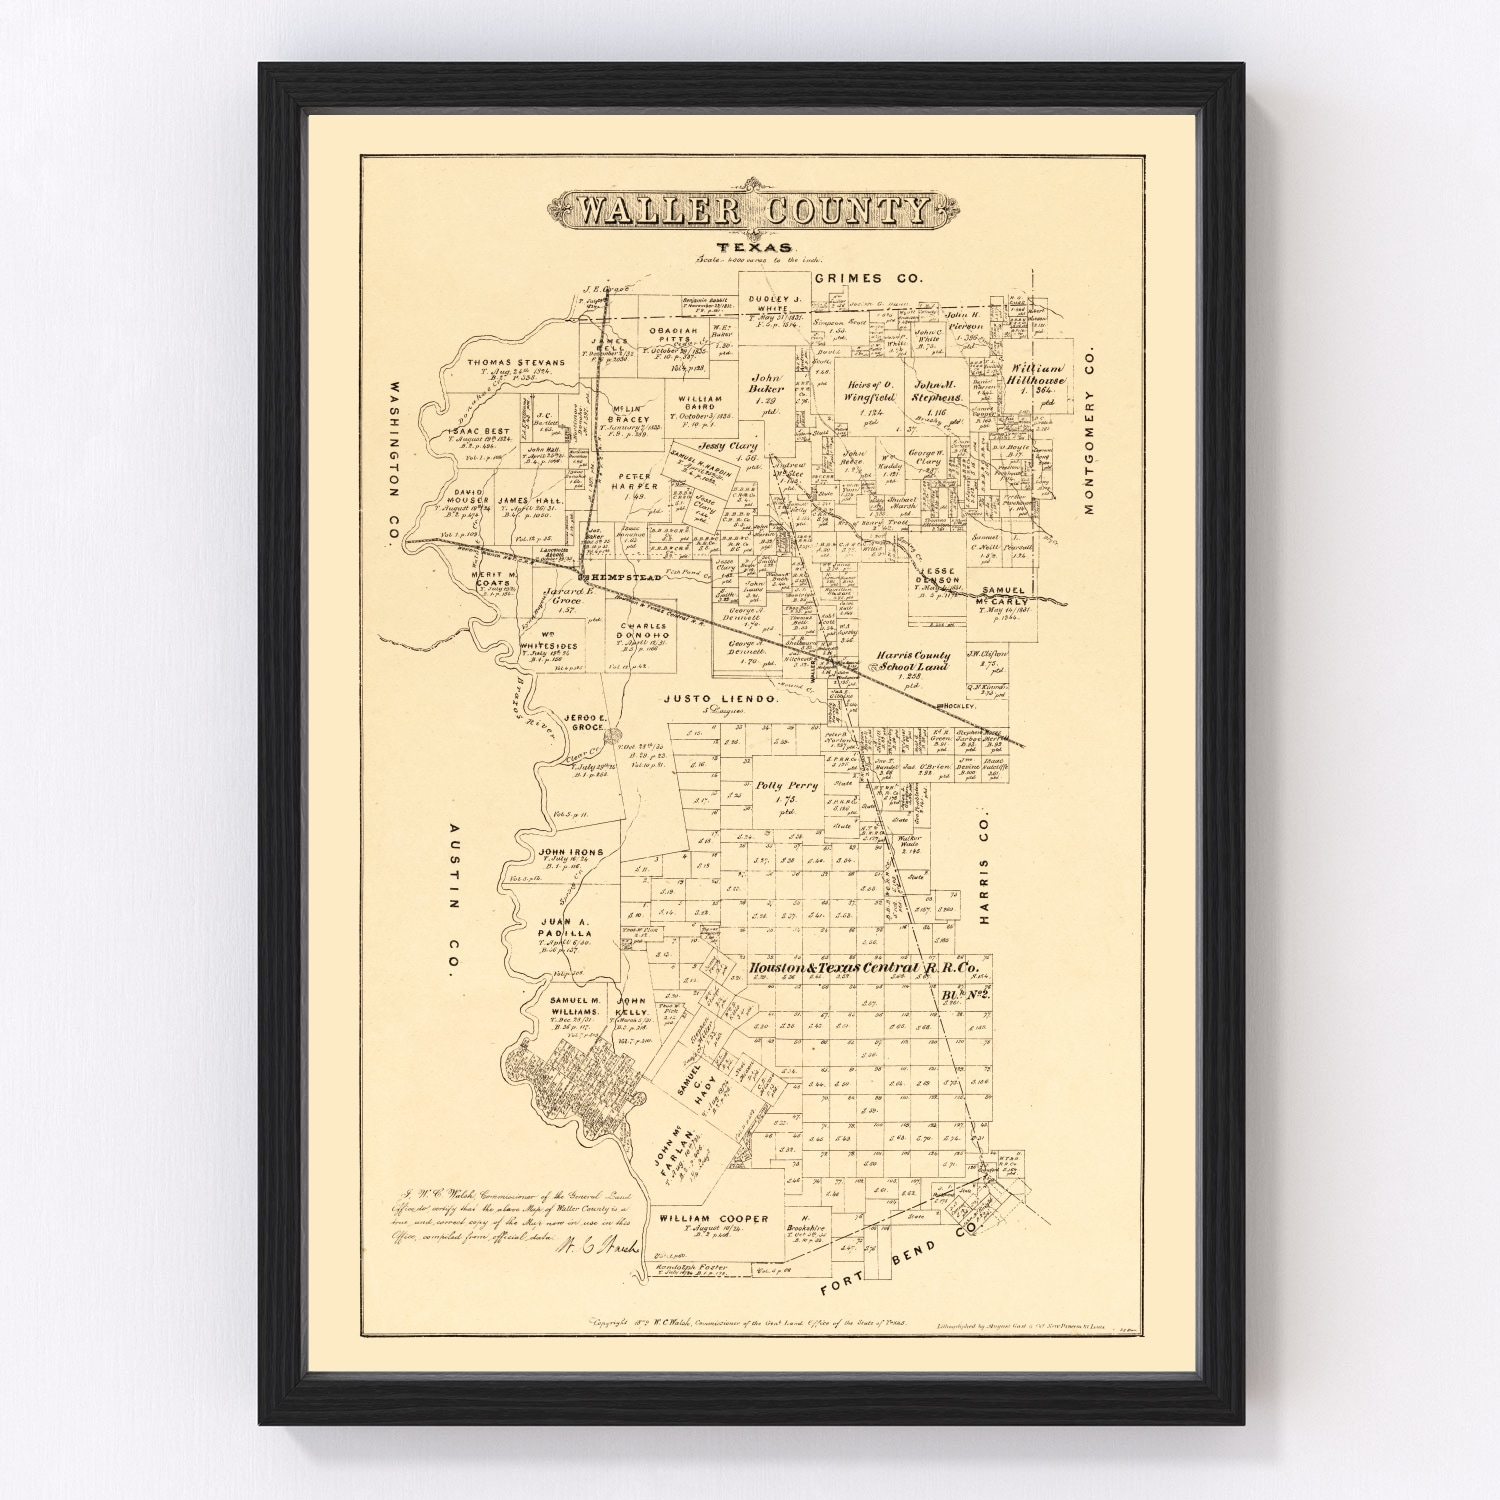 Vintage Map of Waller County, Texas 1879